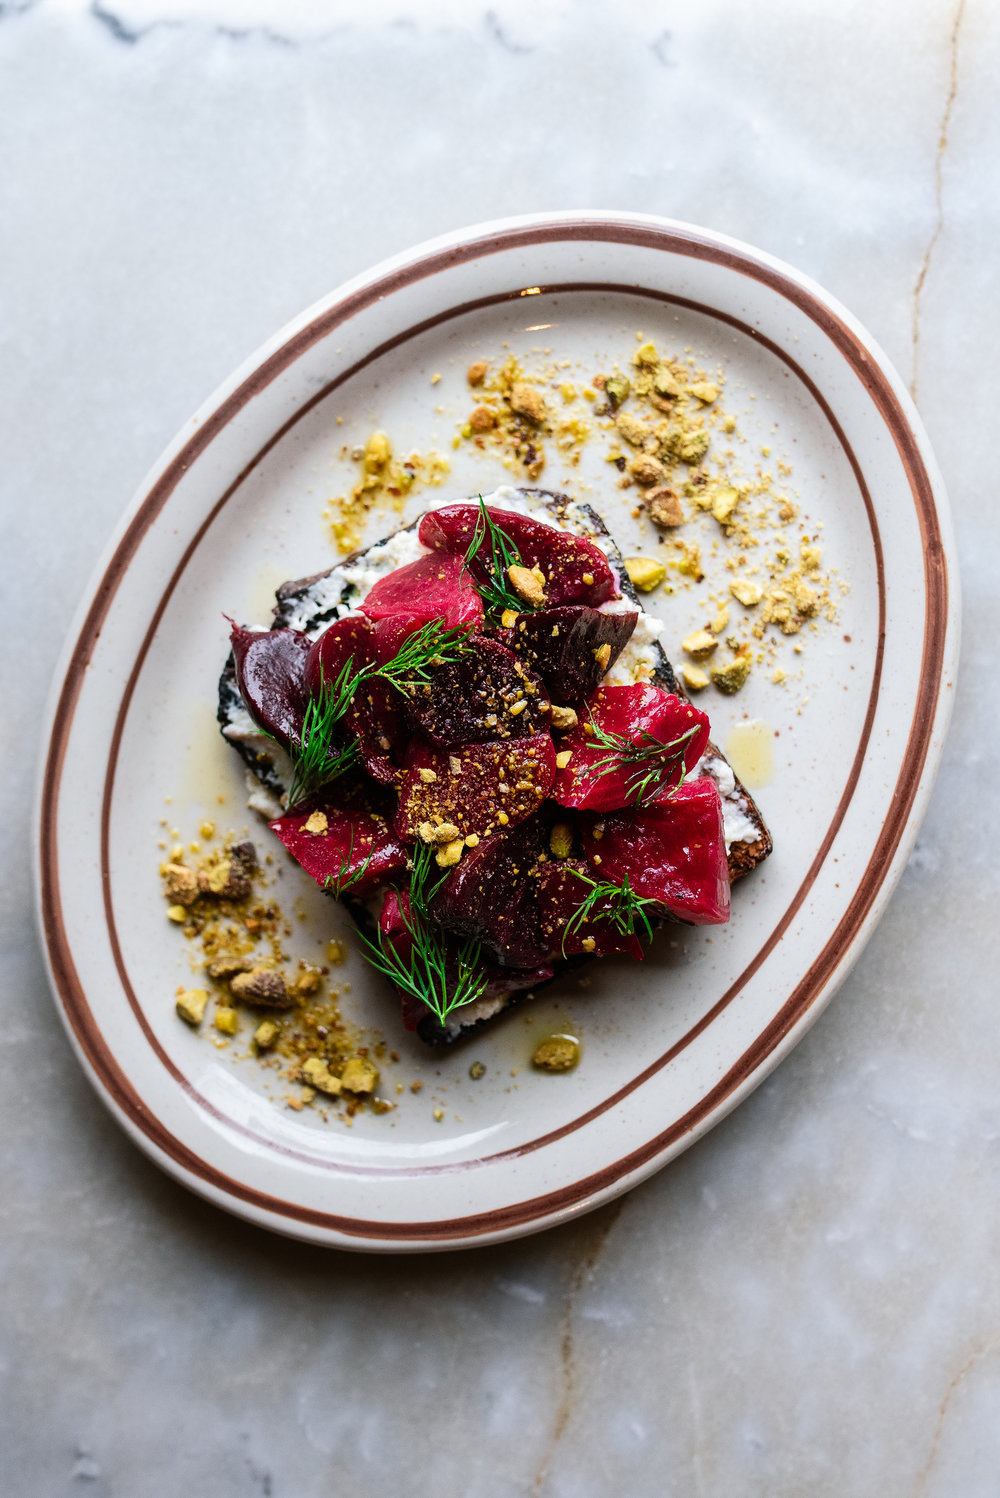 beet bruschetta - red, golden & chioggia beets, Union Loafers' German rye, whipped ricotta, toasted pistachios